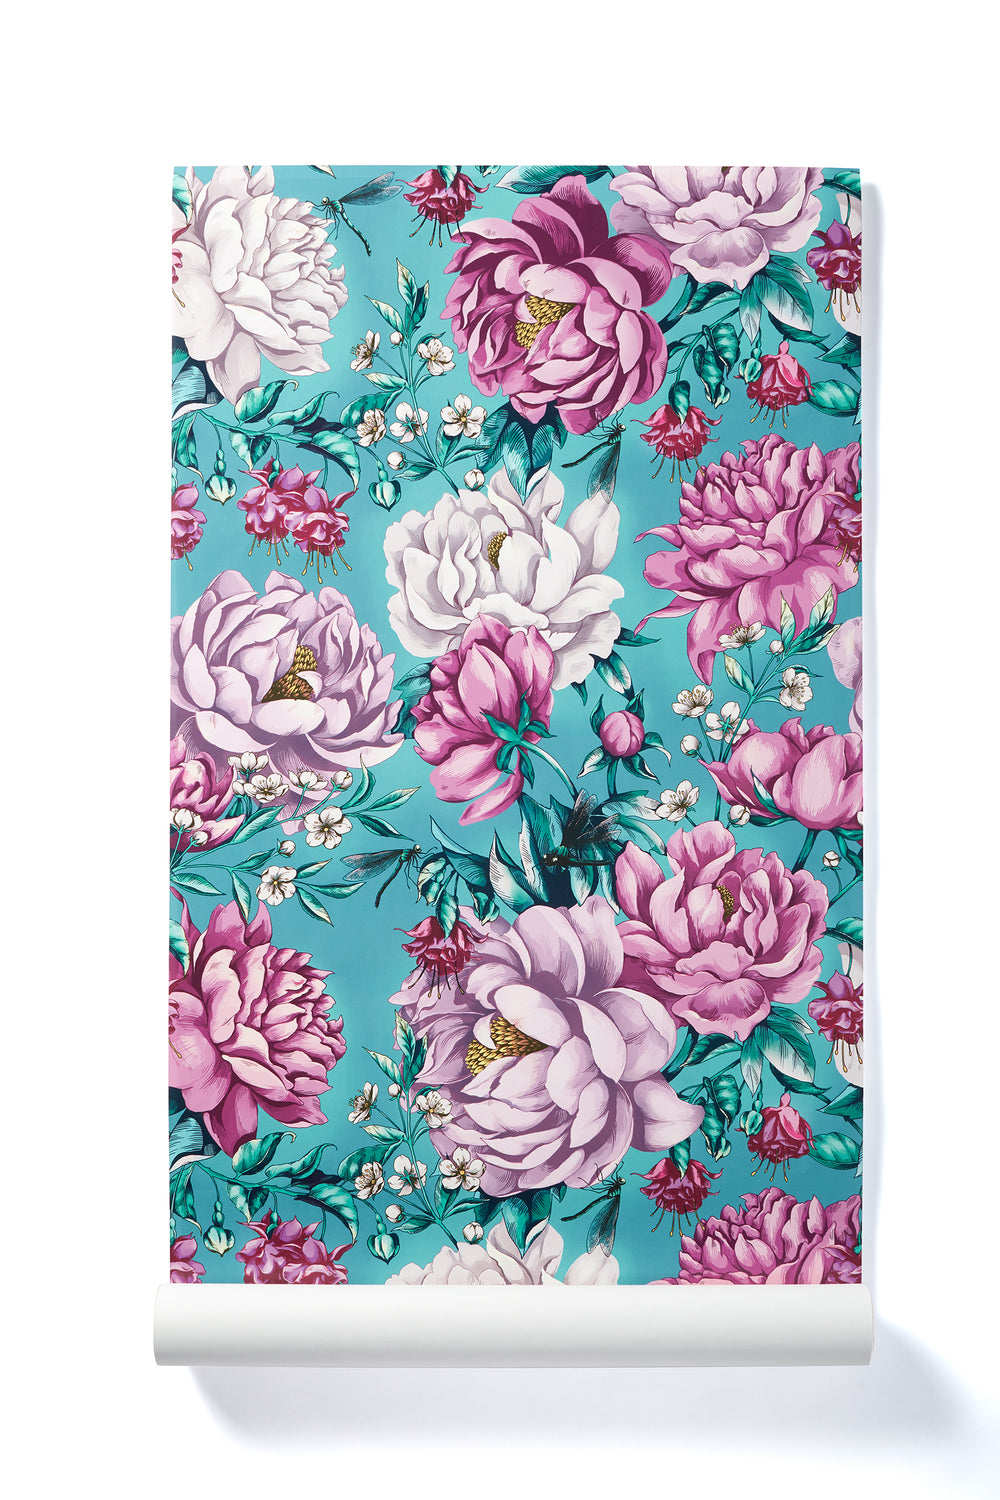 Magical Awakening - Oversized Teal & Pink Peony Floral Wallpaper, Polished Finish